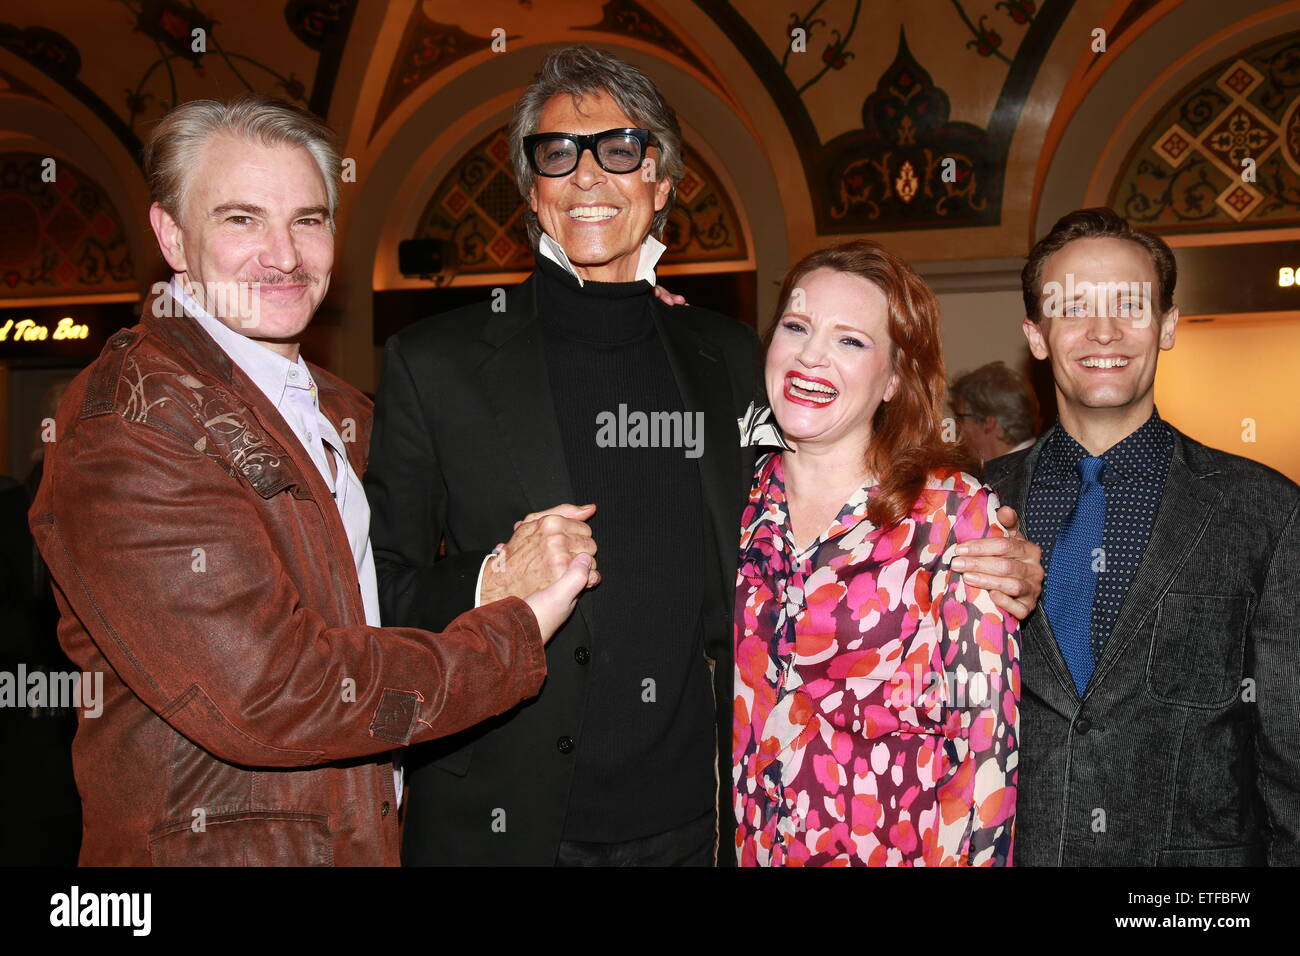 Closing night party for Encores! production of Lady Be Good at NY City Center.  Featuring: Douglas Sills, Tommy - Stock Image